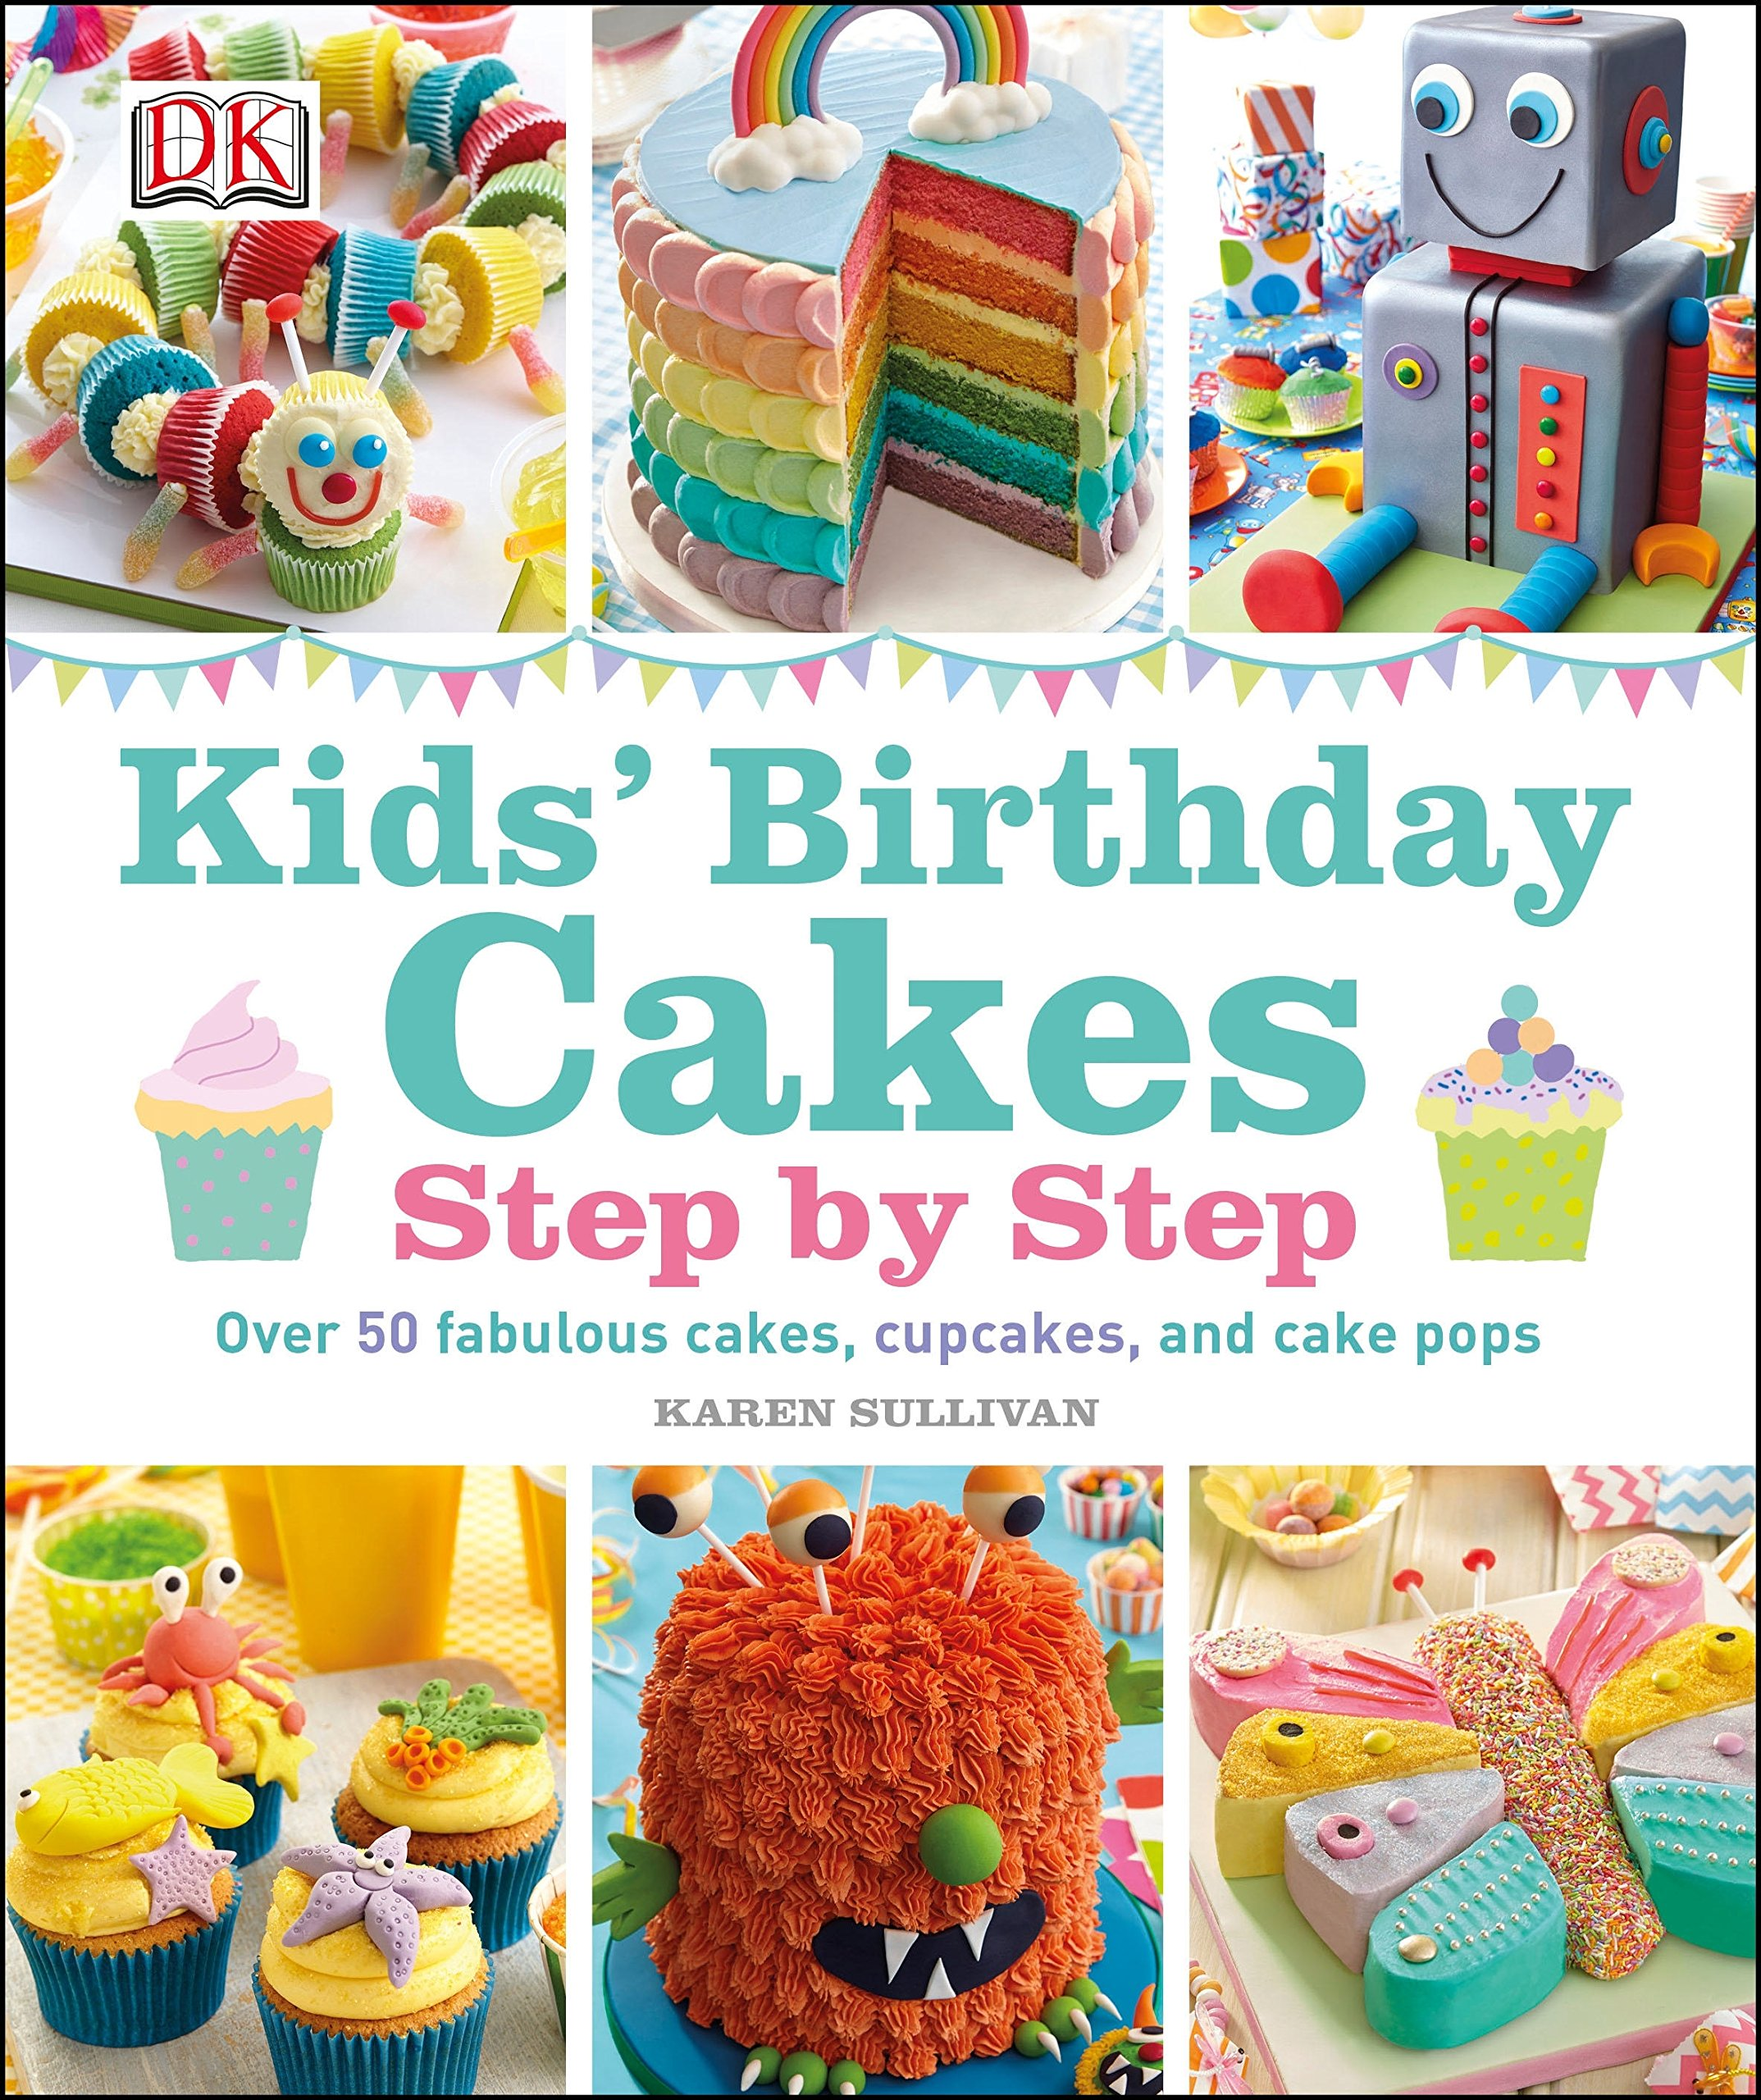 Marvelous Kids Birthday Cakes Amazon Co Uk Sullivan Karen 9781409357193 Funny Birthday Cards Online Inifofree Goldxyz